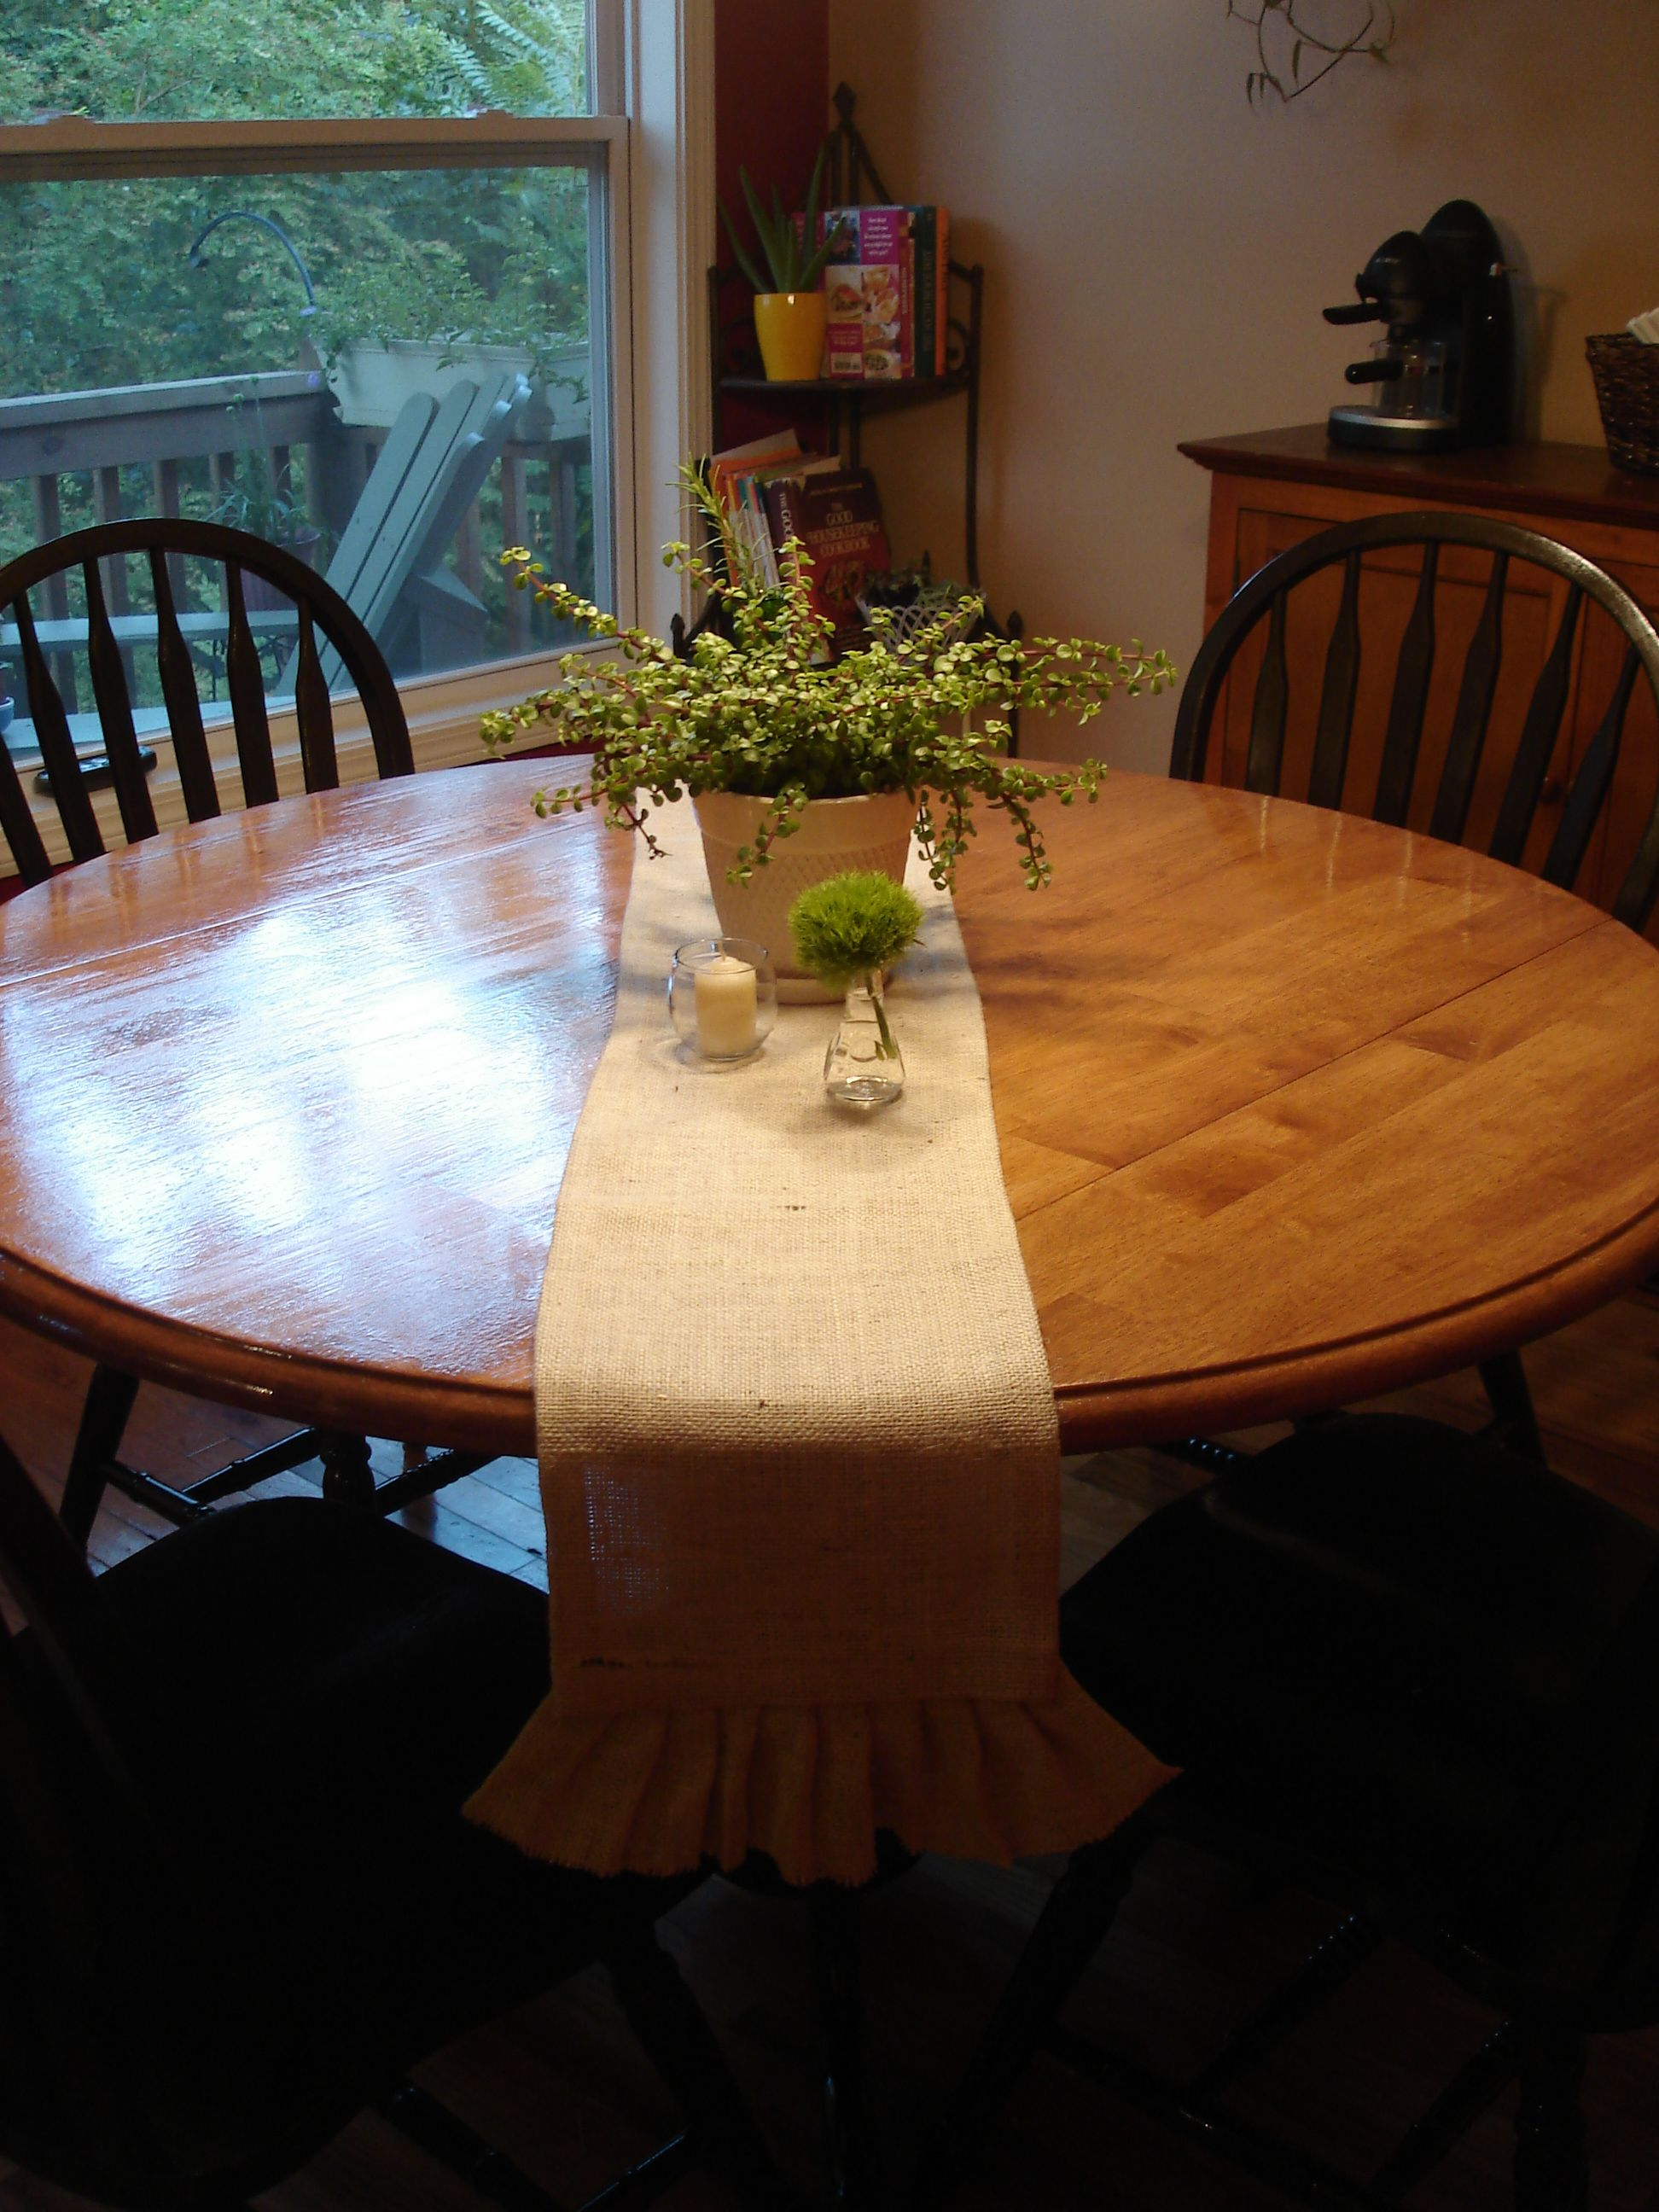 How To Hem Edges On Burlap Fabric With Fusible Webbing To Make Table Runners  (same Can Be Applied To Making Burlap Curtains/note To Self: Remember When  ...